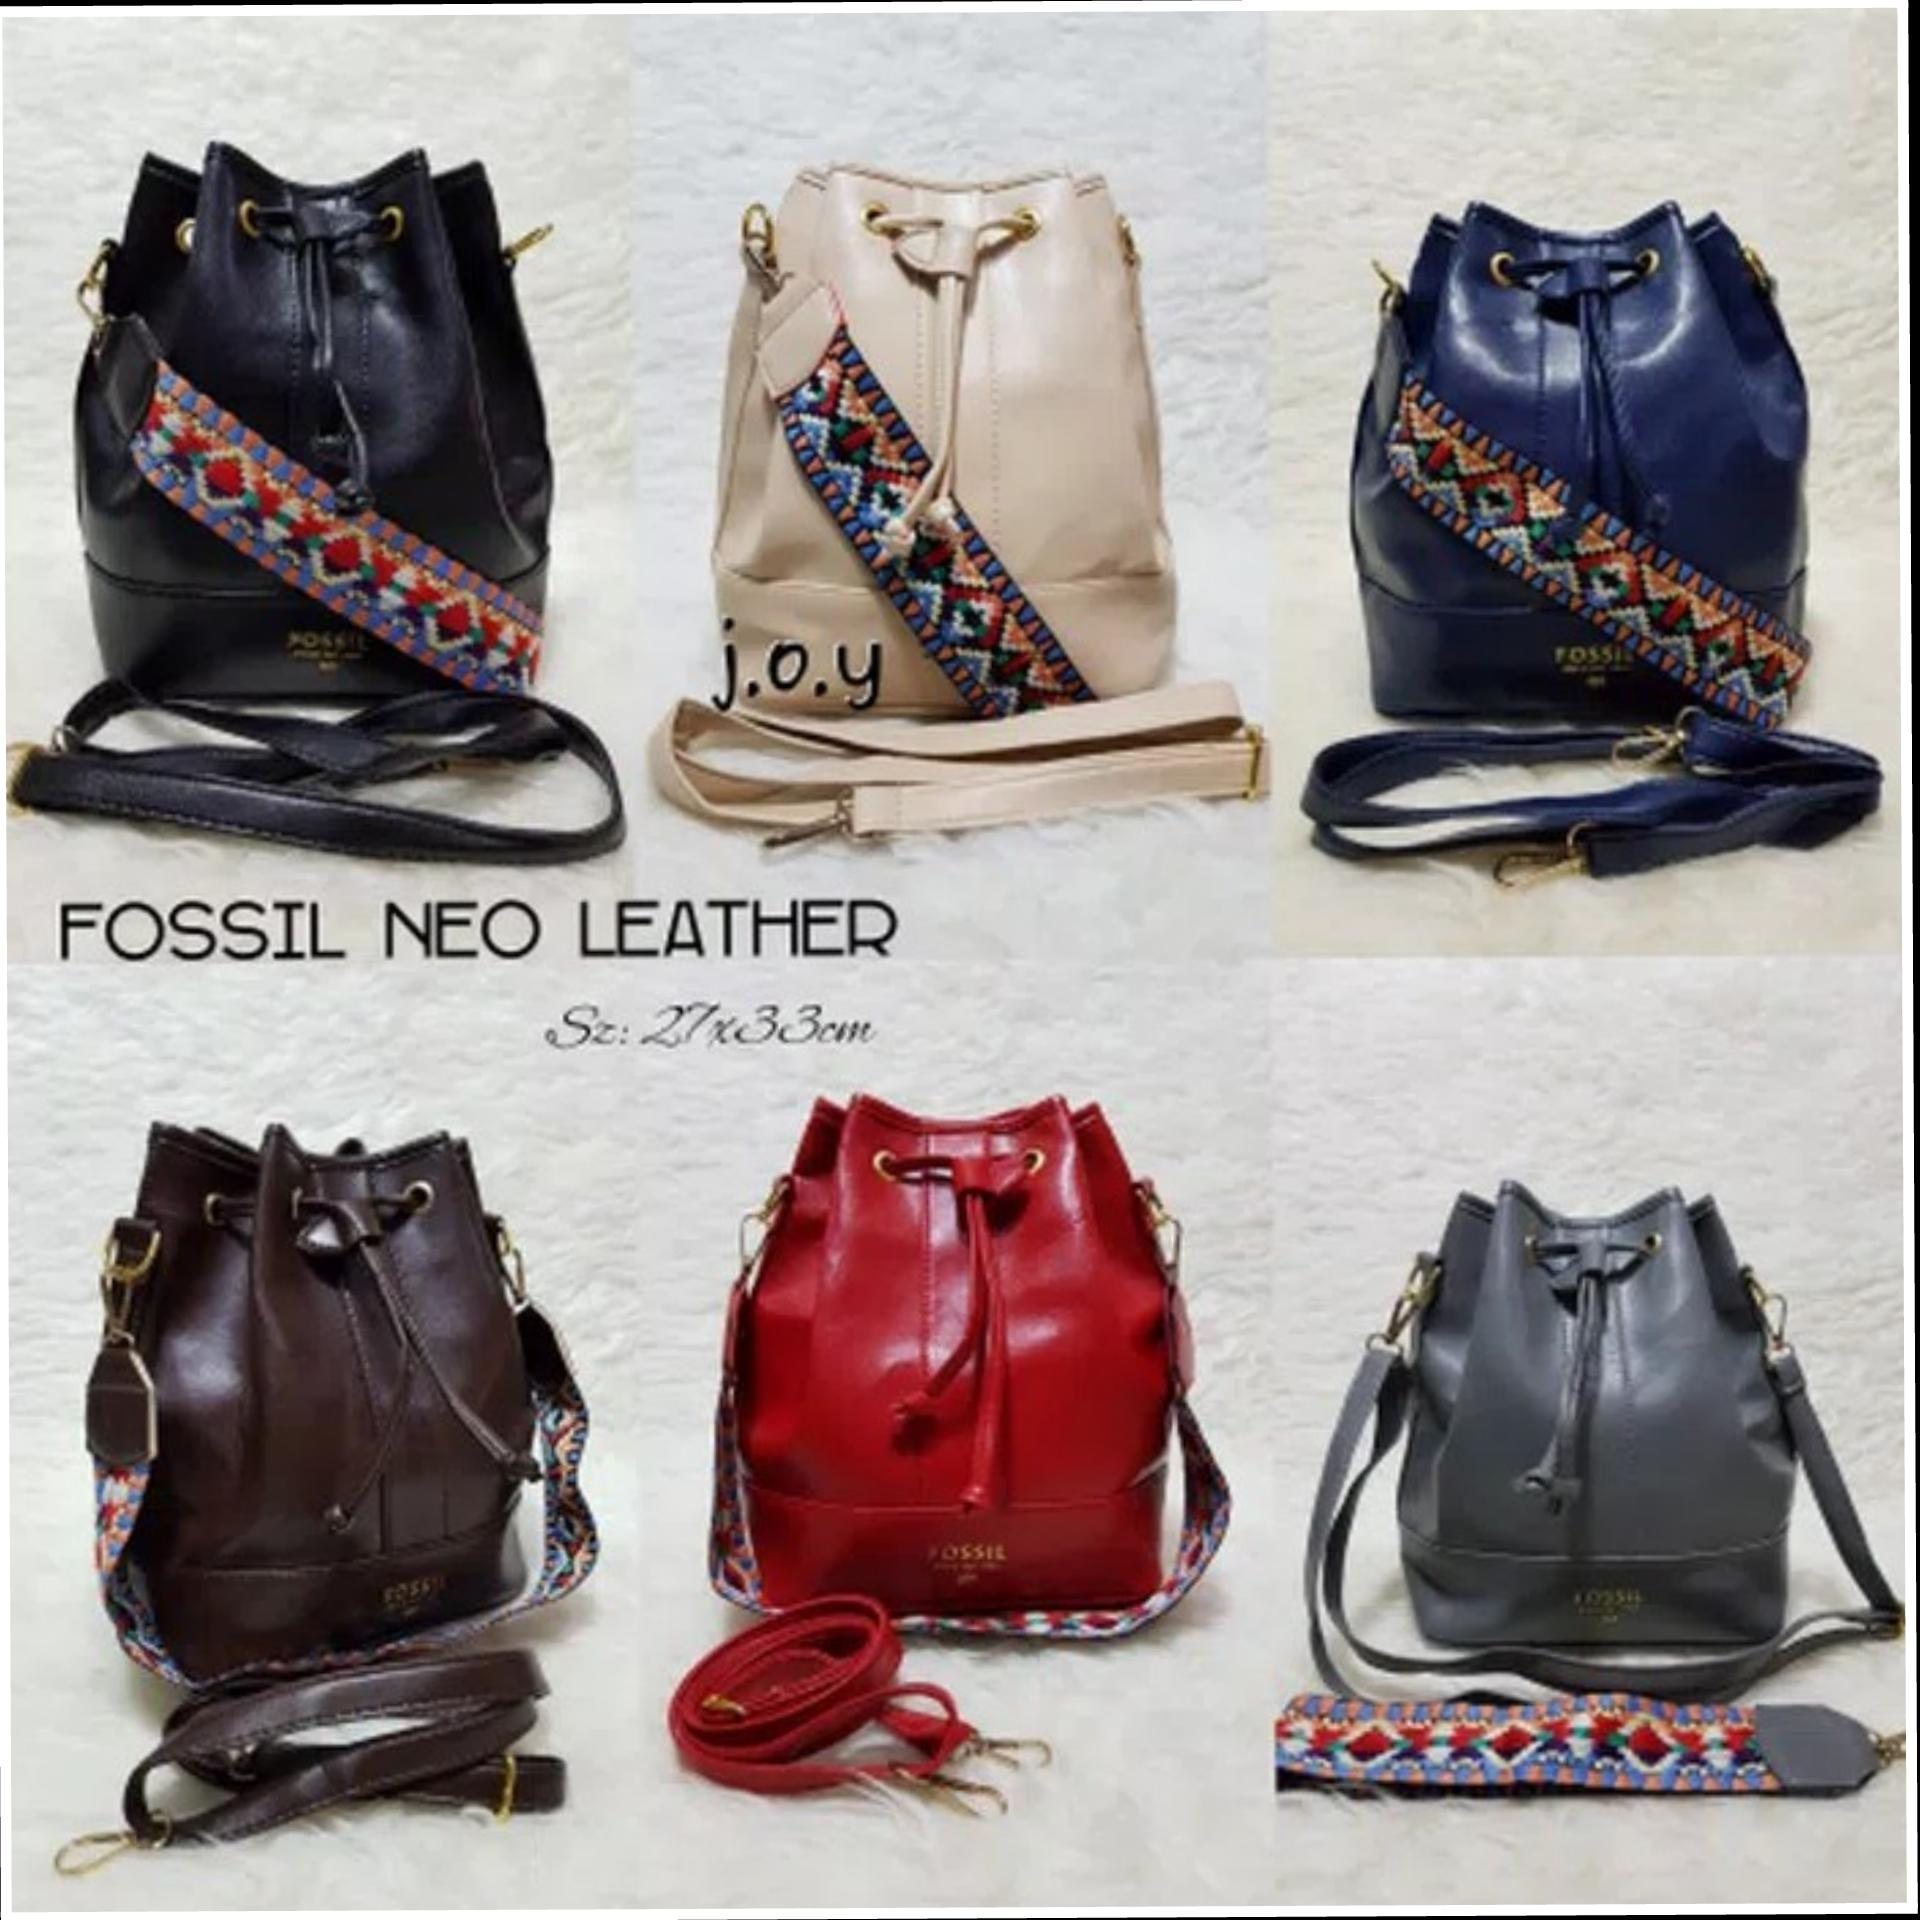 Fossil Preston Small Flap Espresso Zb 5873206 Daftar Harga Peyton Printed Large Double Pink Multi 6986664 Tas Hand Bag Neo Leather 2in 1 Khisan Store